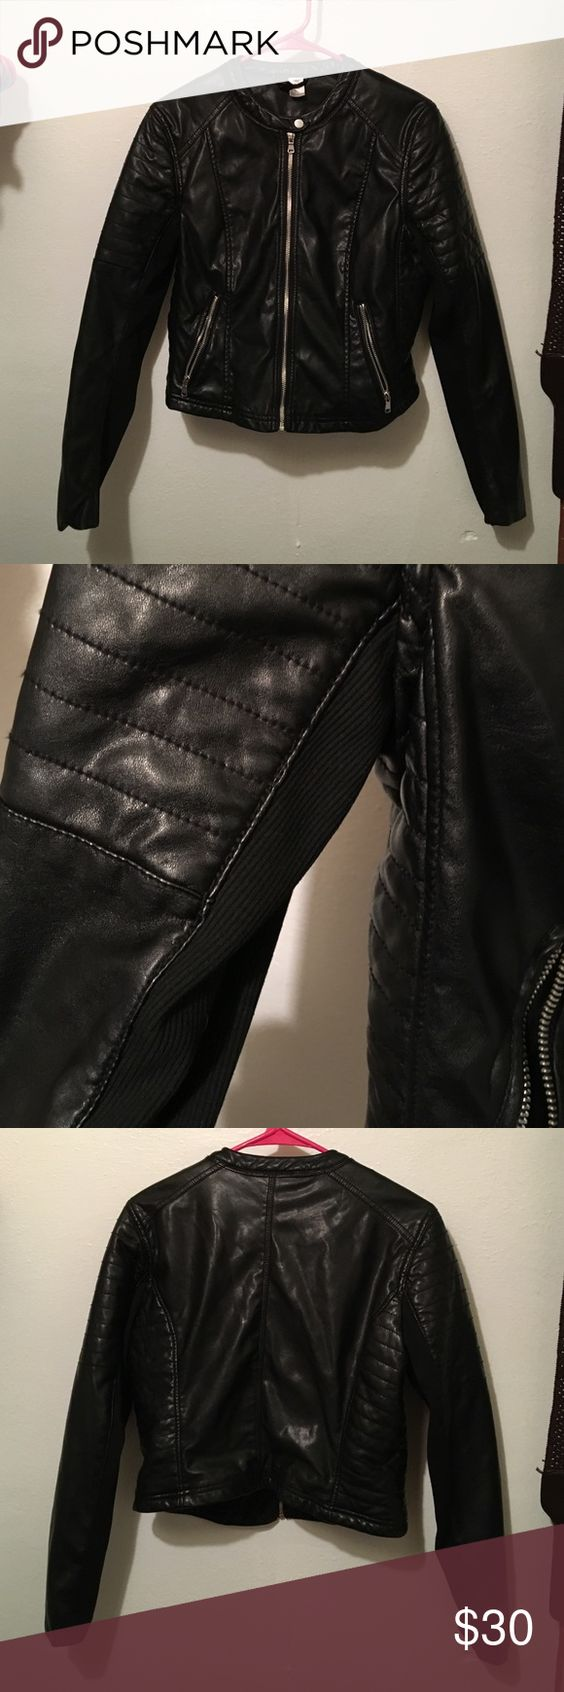 Black Leather Jacket Worn twice. The leather is in excellent condition! There's no stains or rips or anything. Still looks and feels new! :) H&M Jackets & Coats